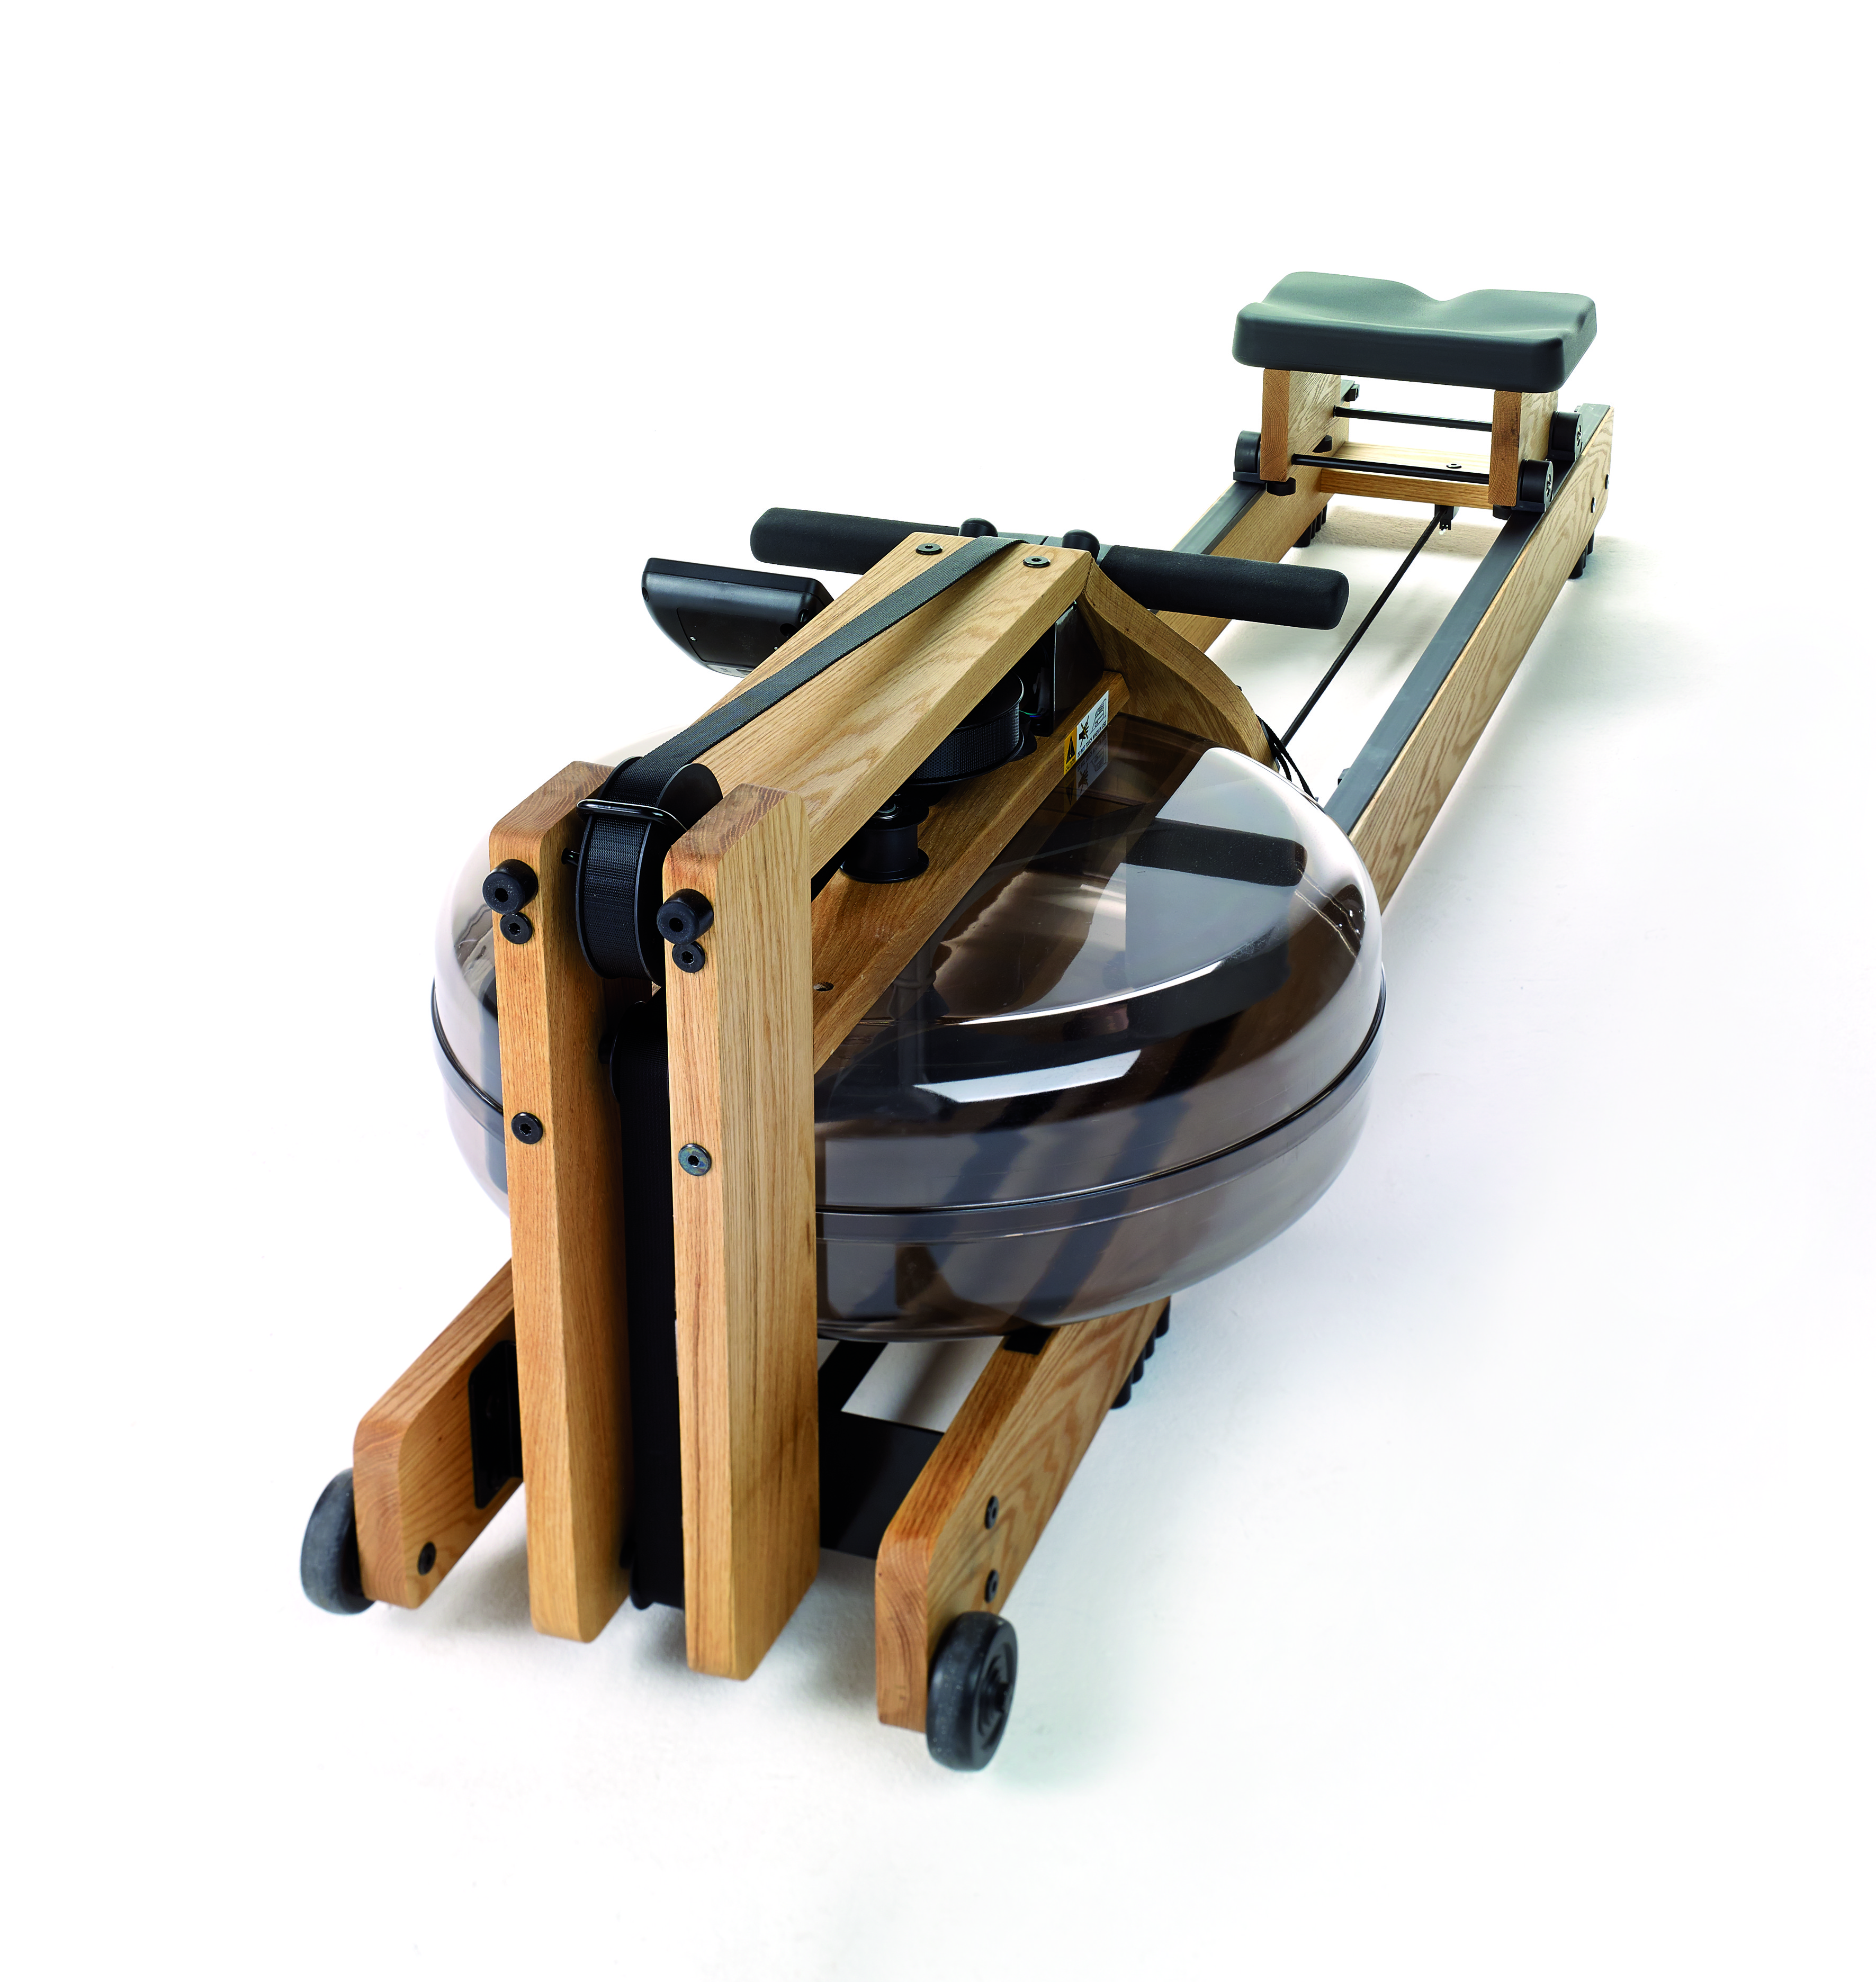 Le WaterRower en chêne